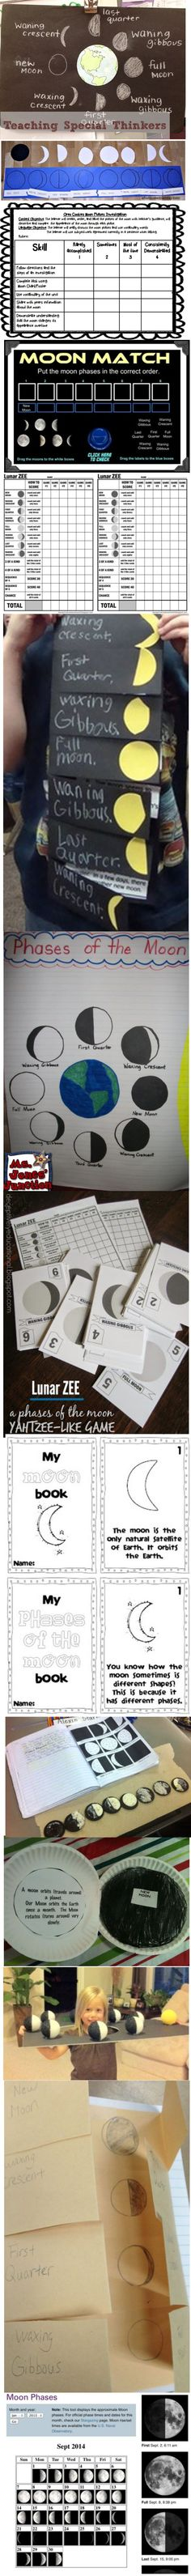 Teaching the phases of the moon just got a little easier. Here are 21 super moon phases activities and resources including a few printables, a song and videos.